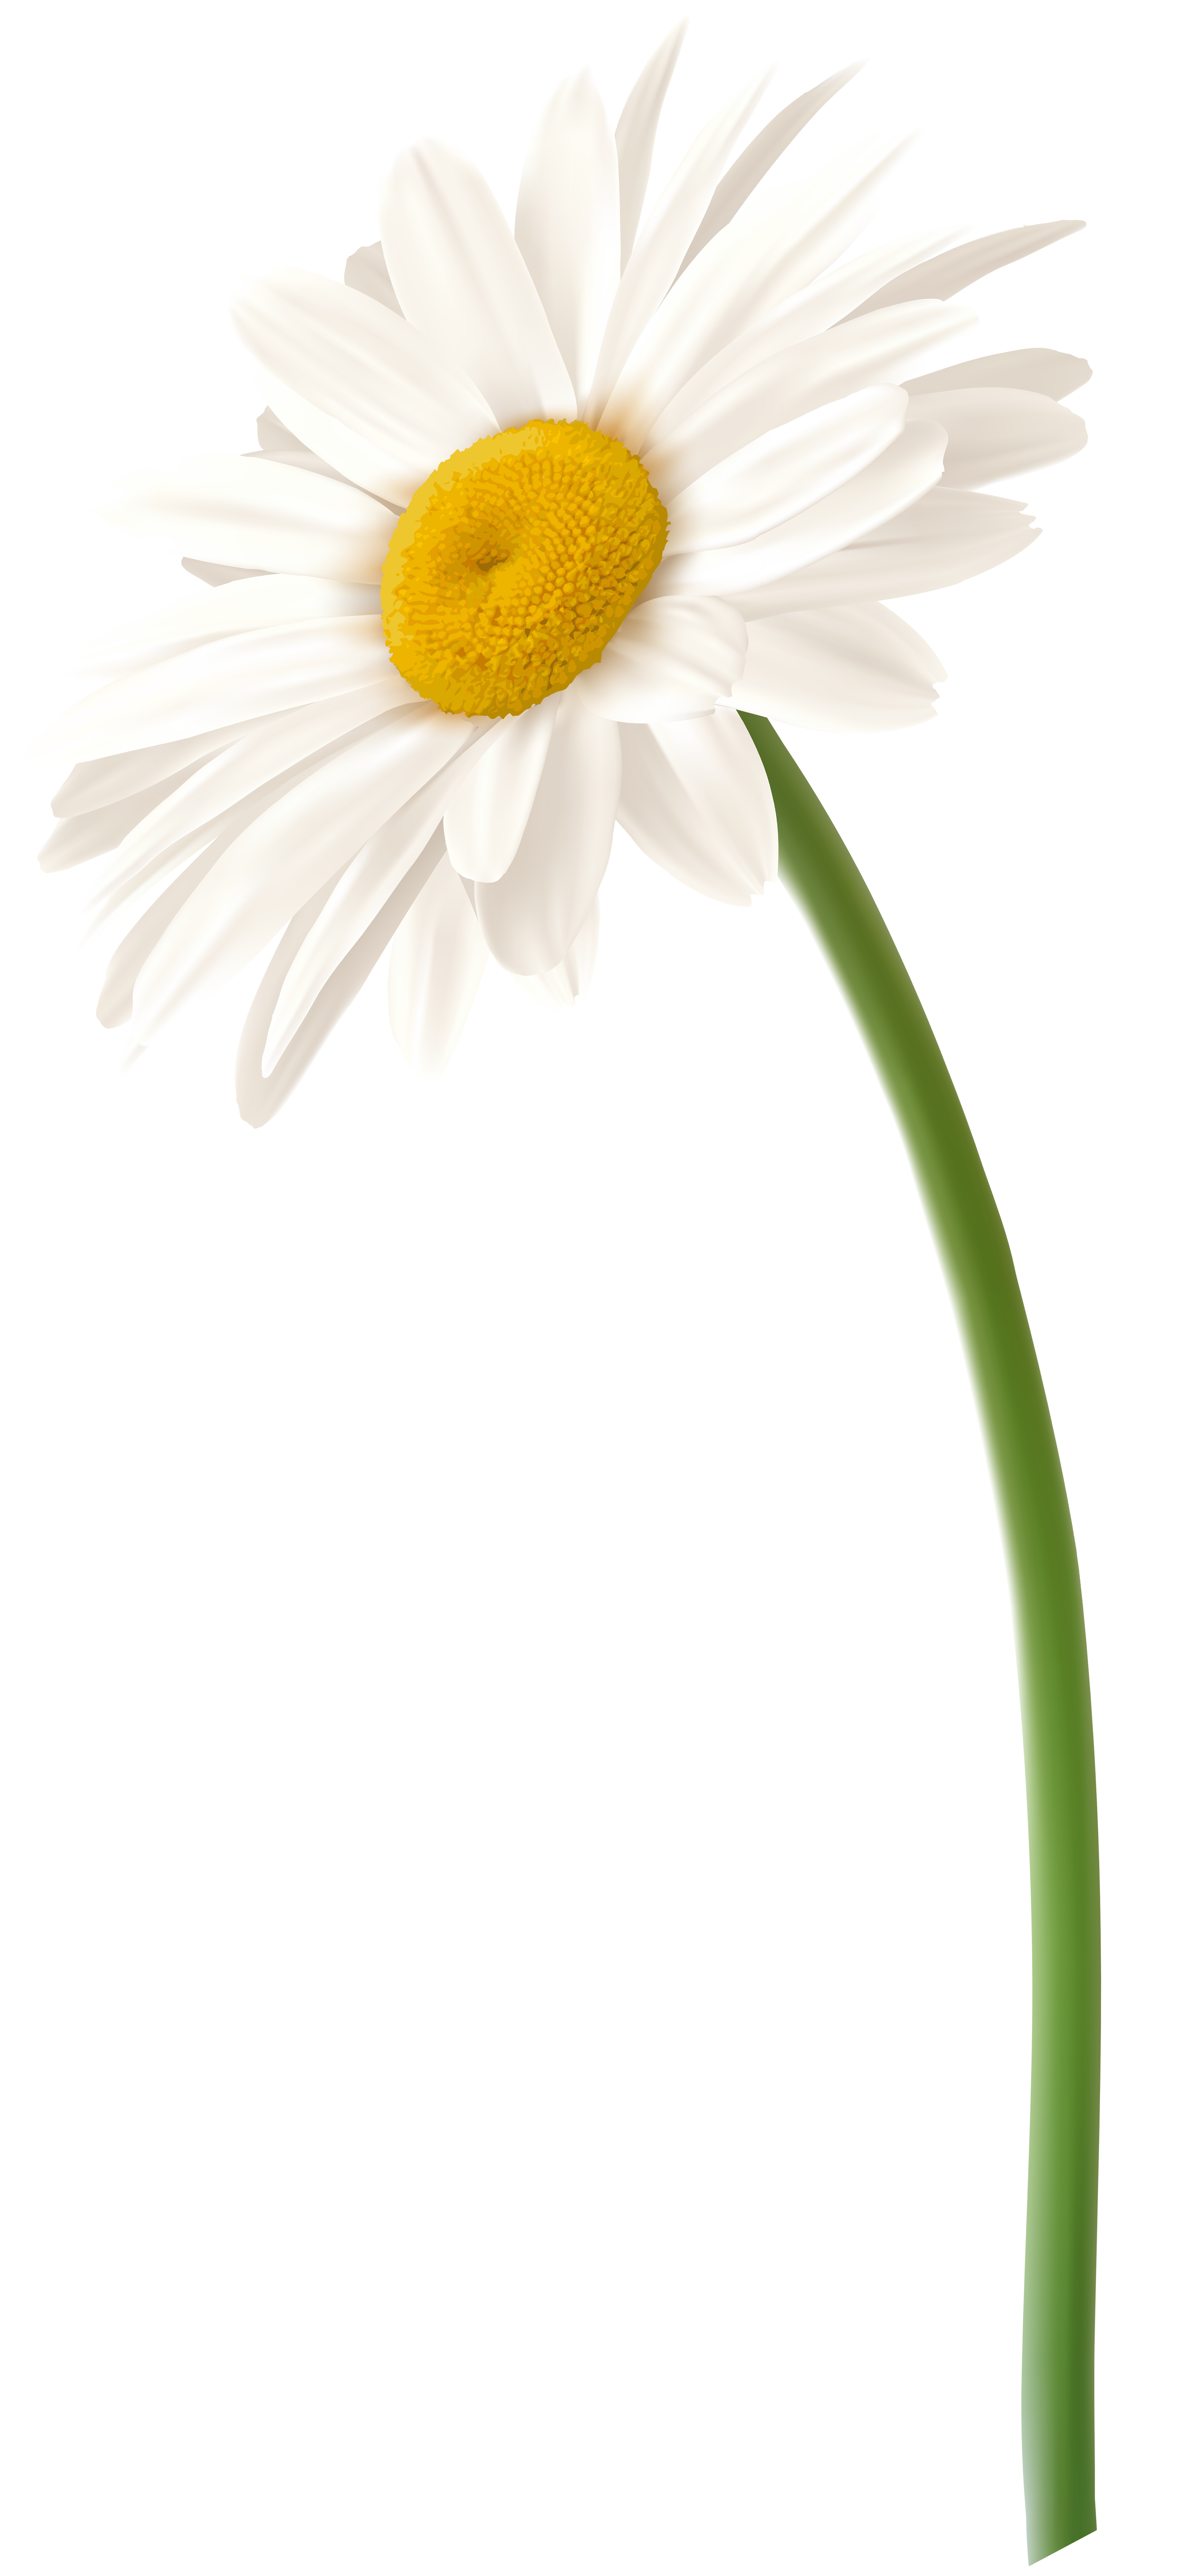 Flower daisy clipart image stock Gerbera Daisy Clipart at GetDrawings.com | Free for personal use ... image stock